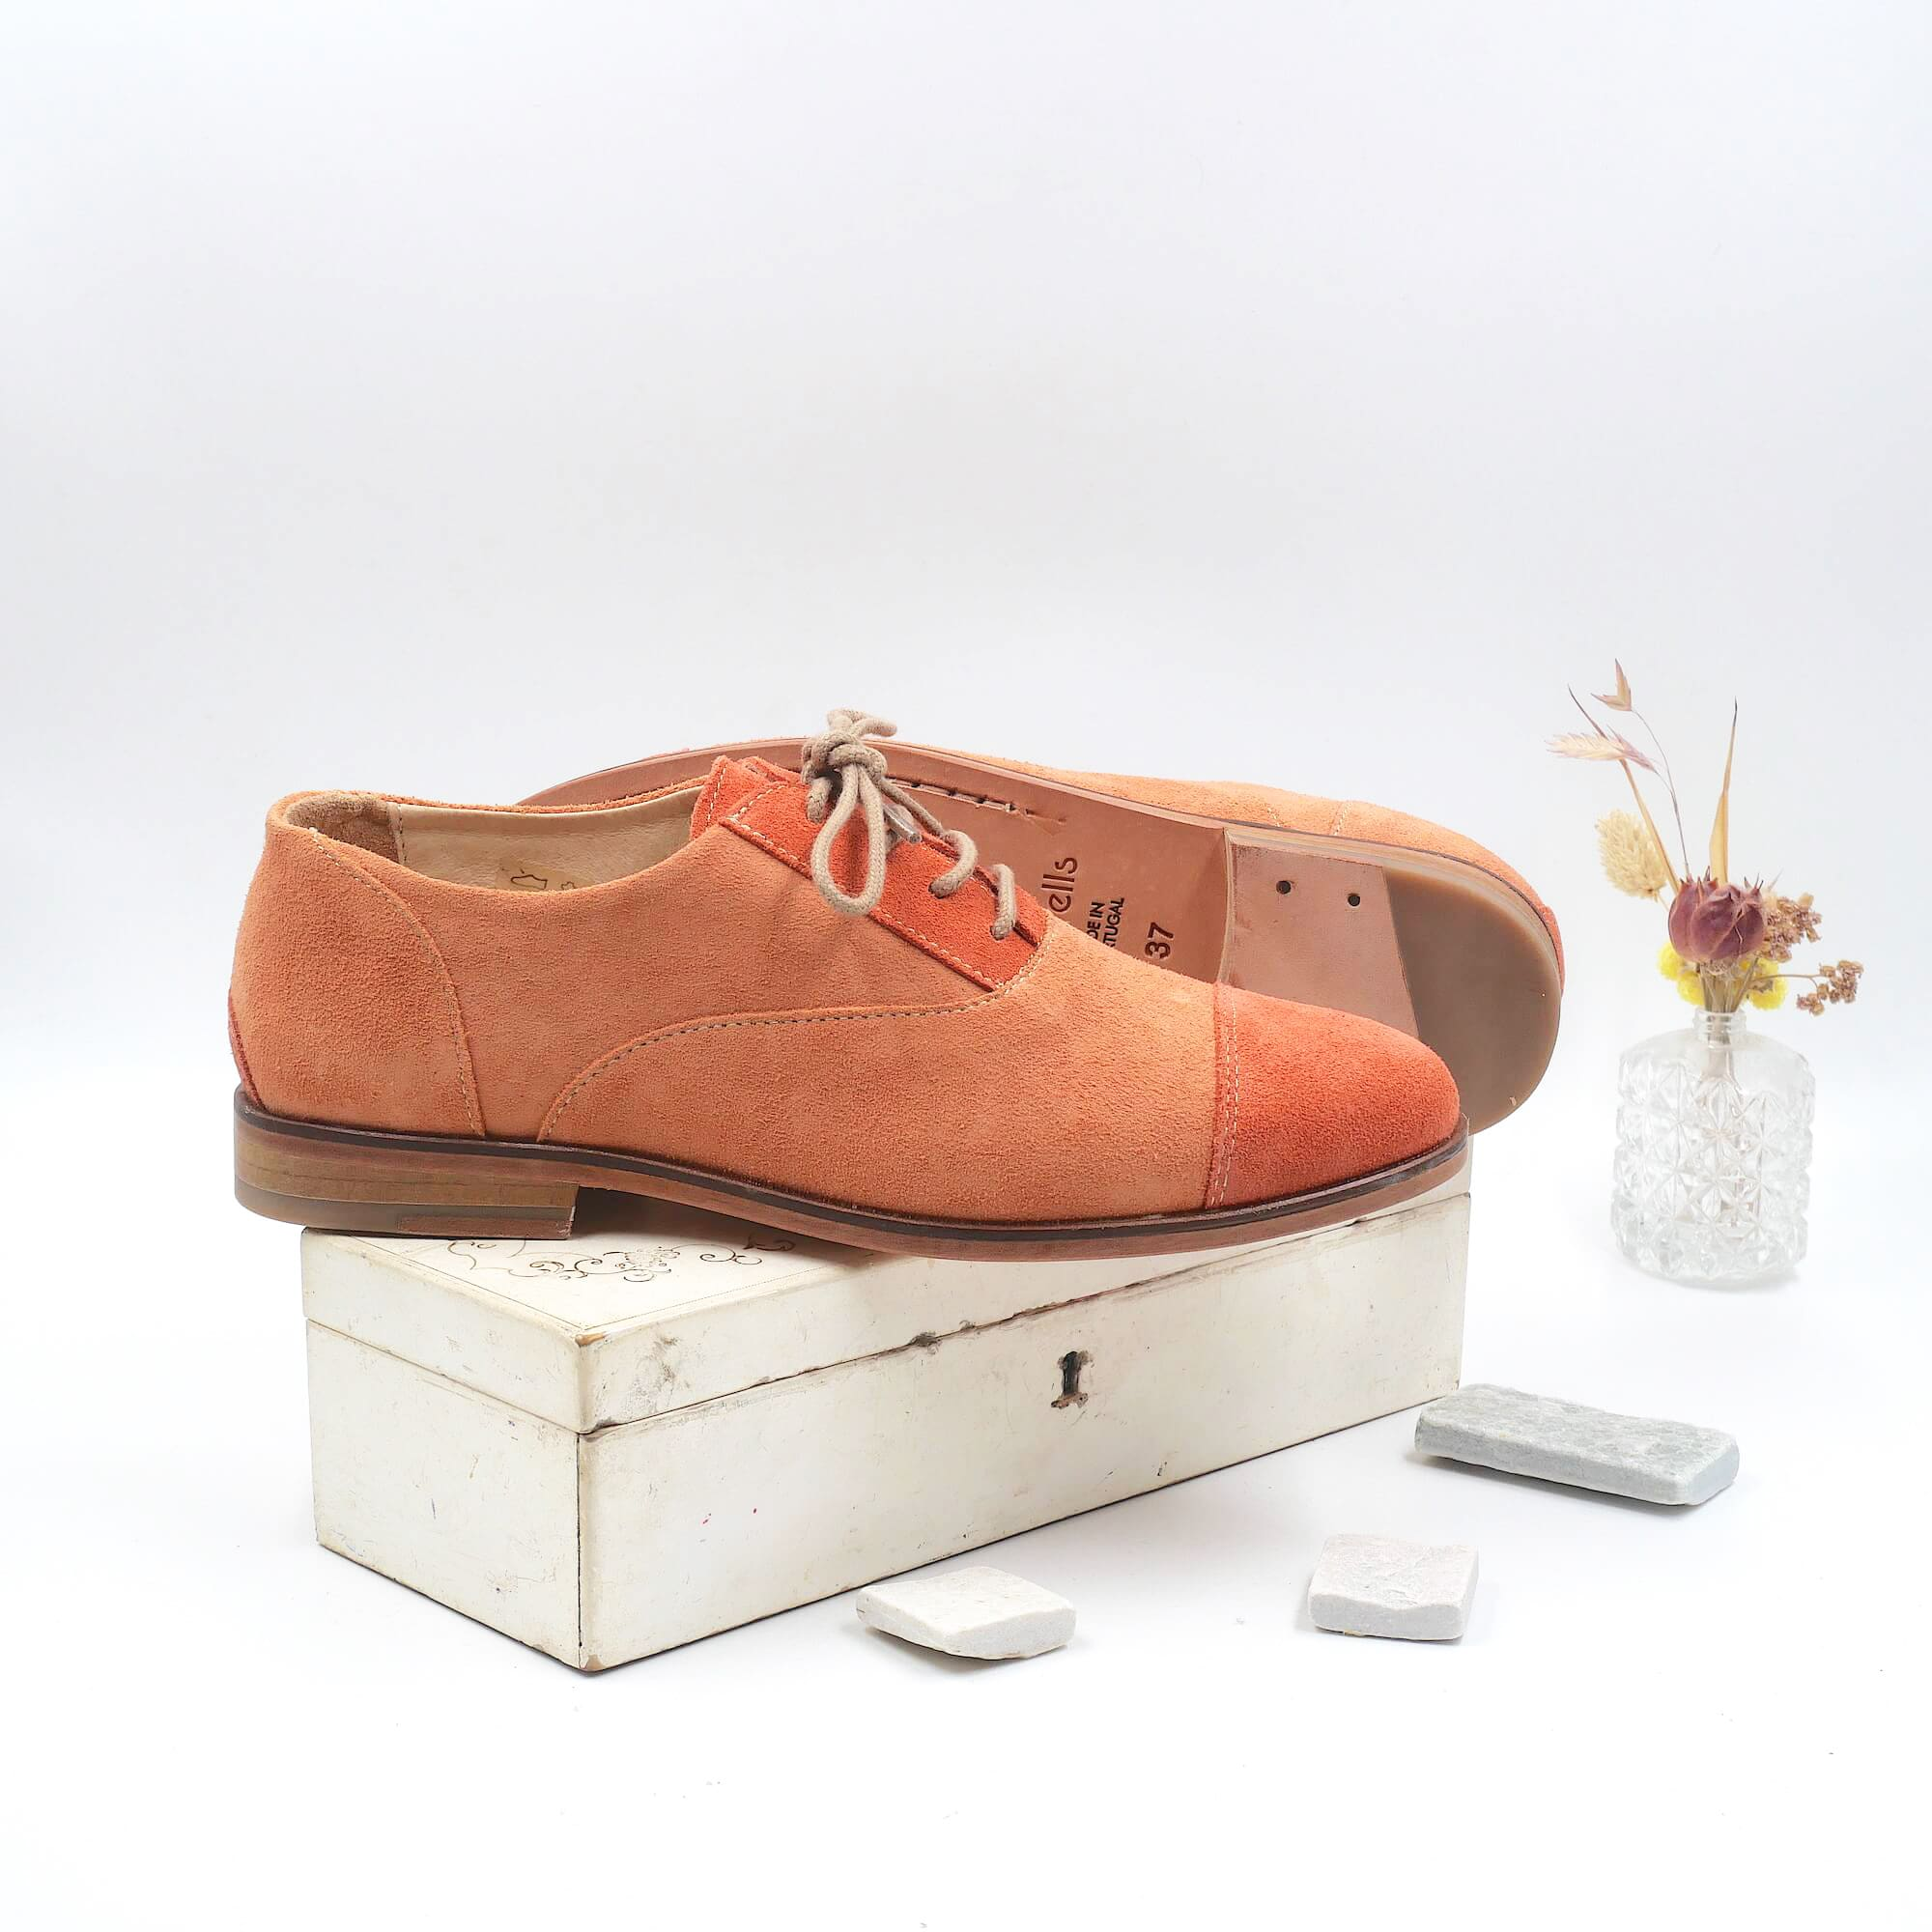 Coralie Salmon and coral suede derbies picture